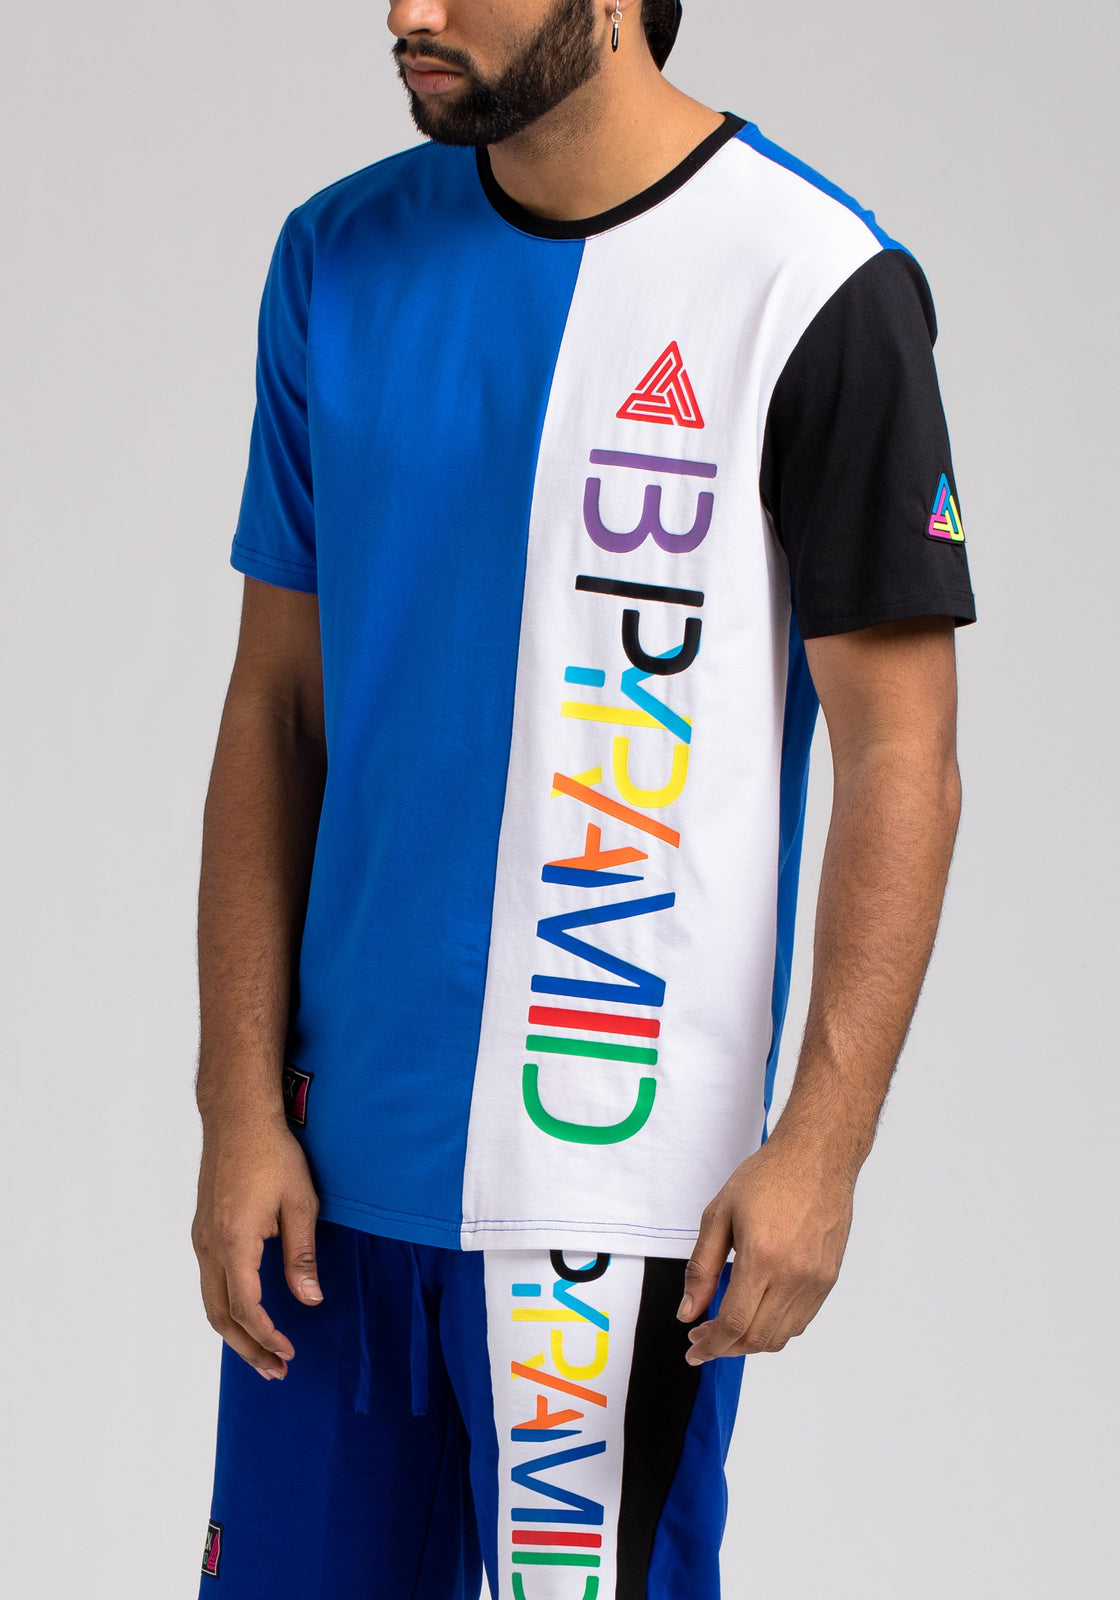 BPYRAMID COLOR BLOCK TEE - Color: Blue